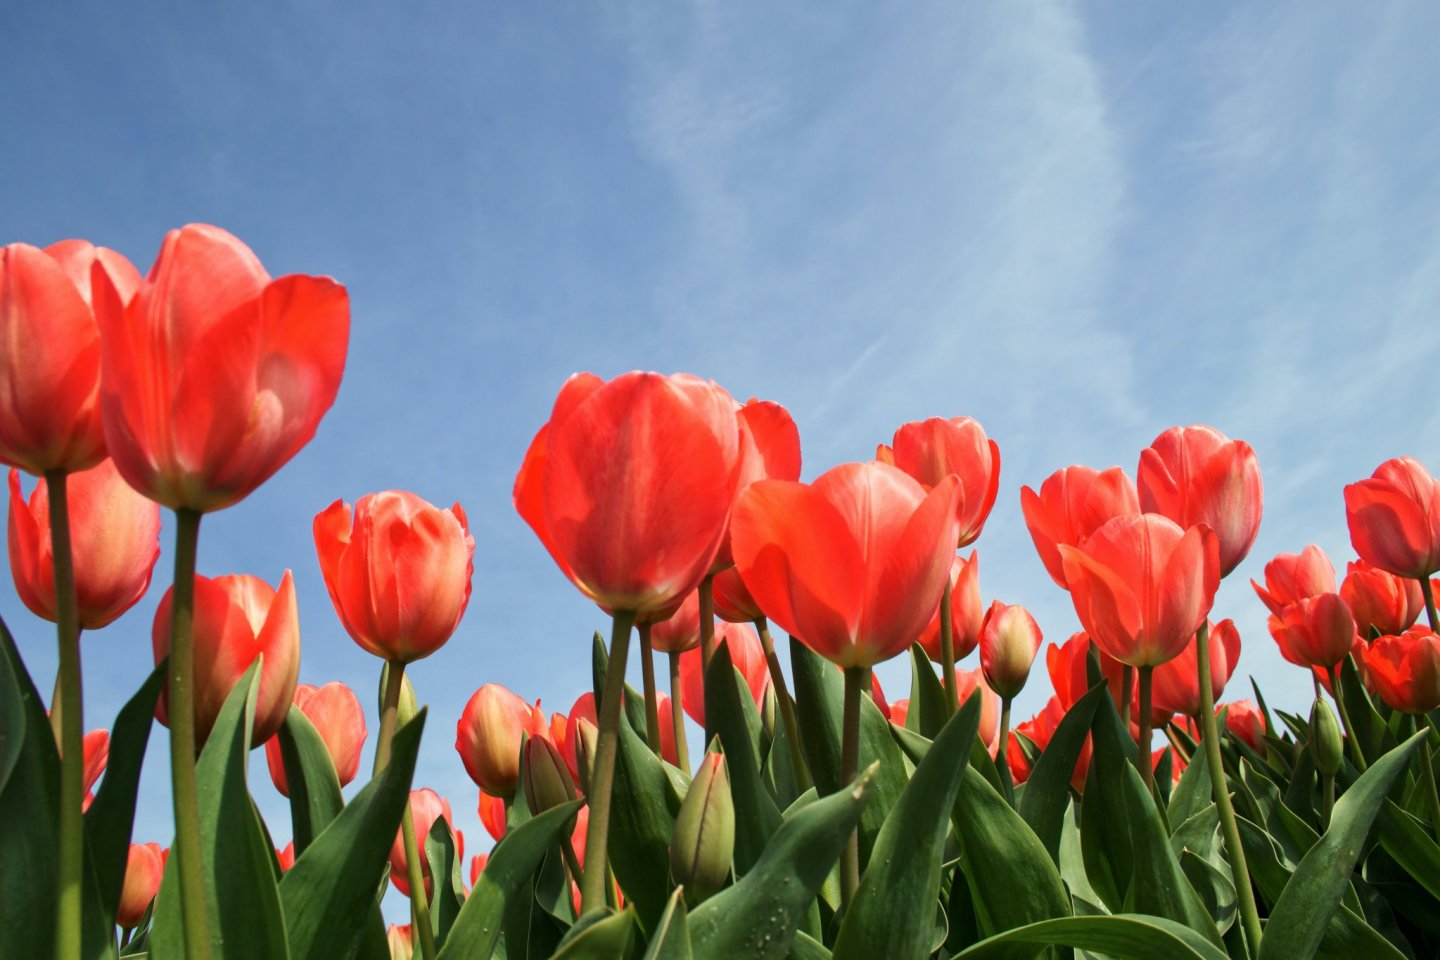 Tulips are one of the delights of spring in Japan